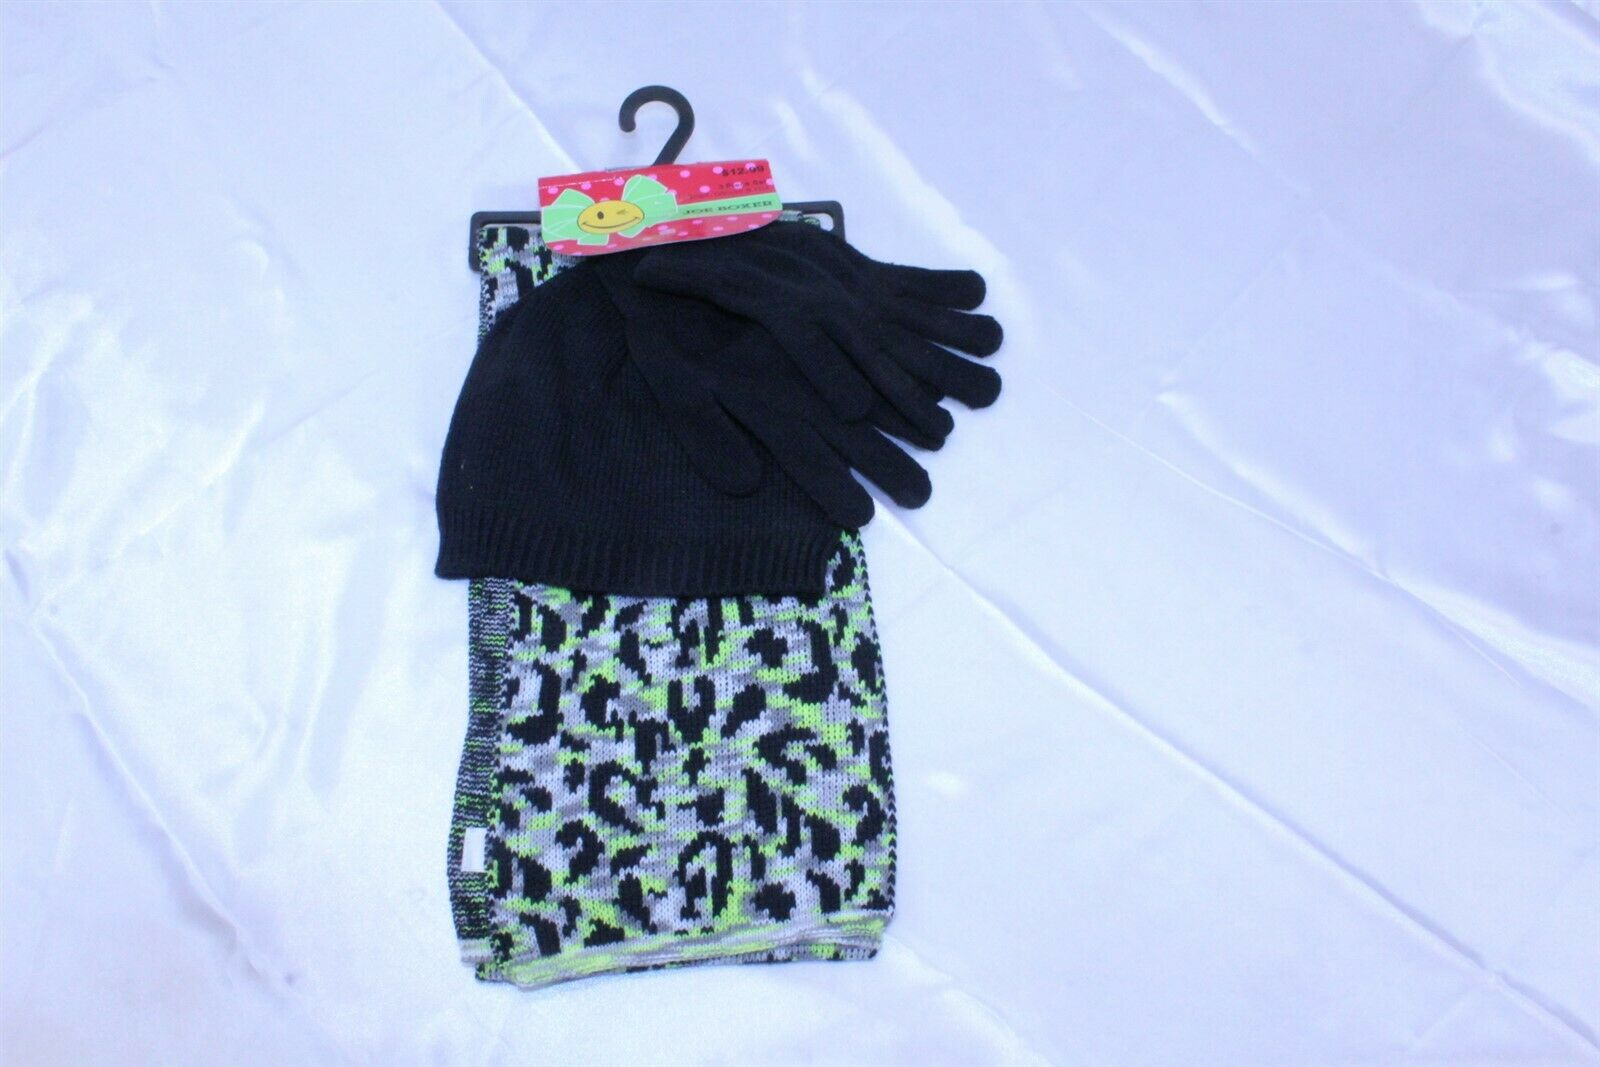 4 PC Cold Weather Women's Accessory Set Scarf, Gloves, Hat by Joe Boxer